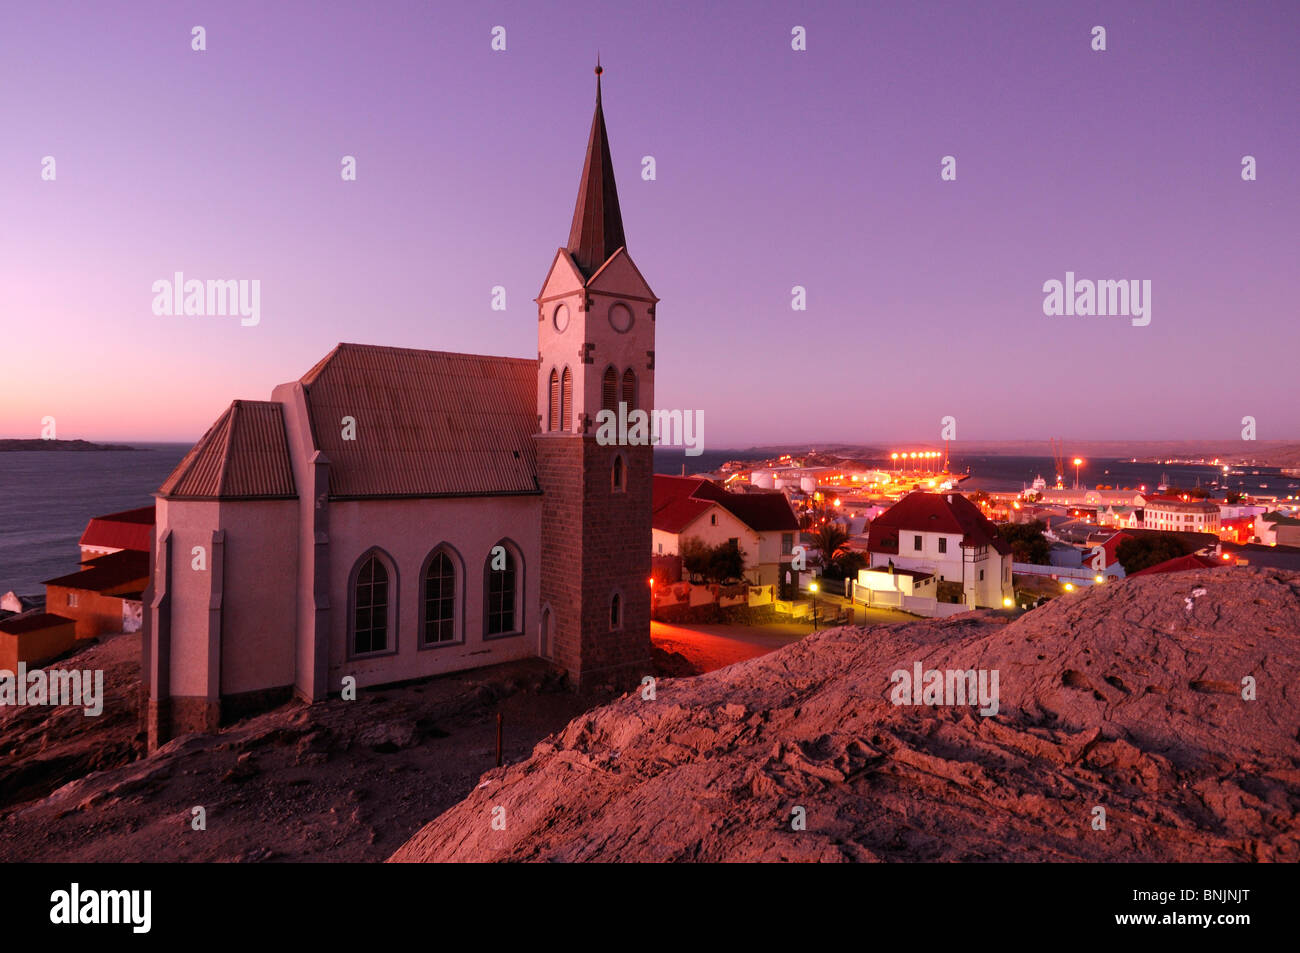 Church Luderitz Karas Region Namibia Africa Travel town - Stock Image